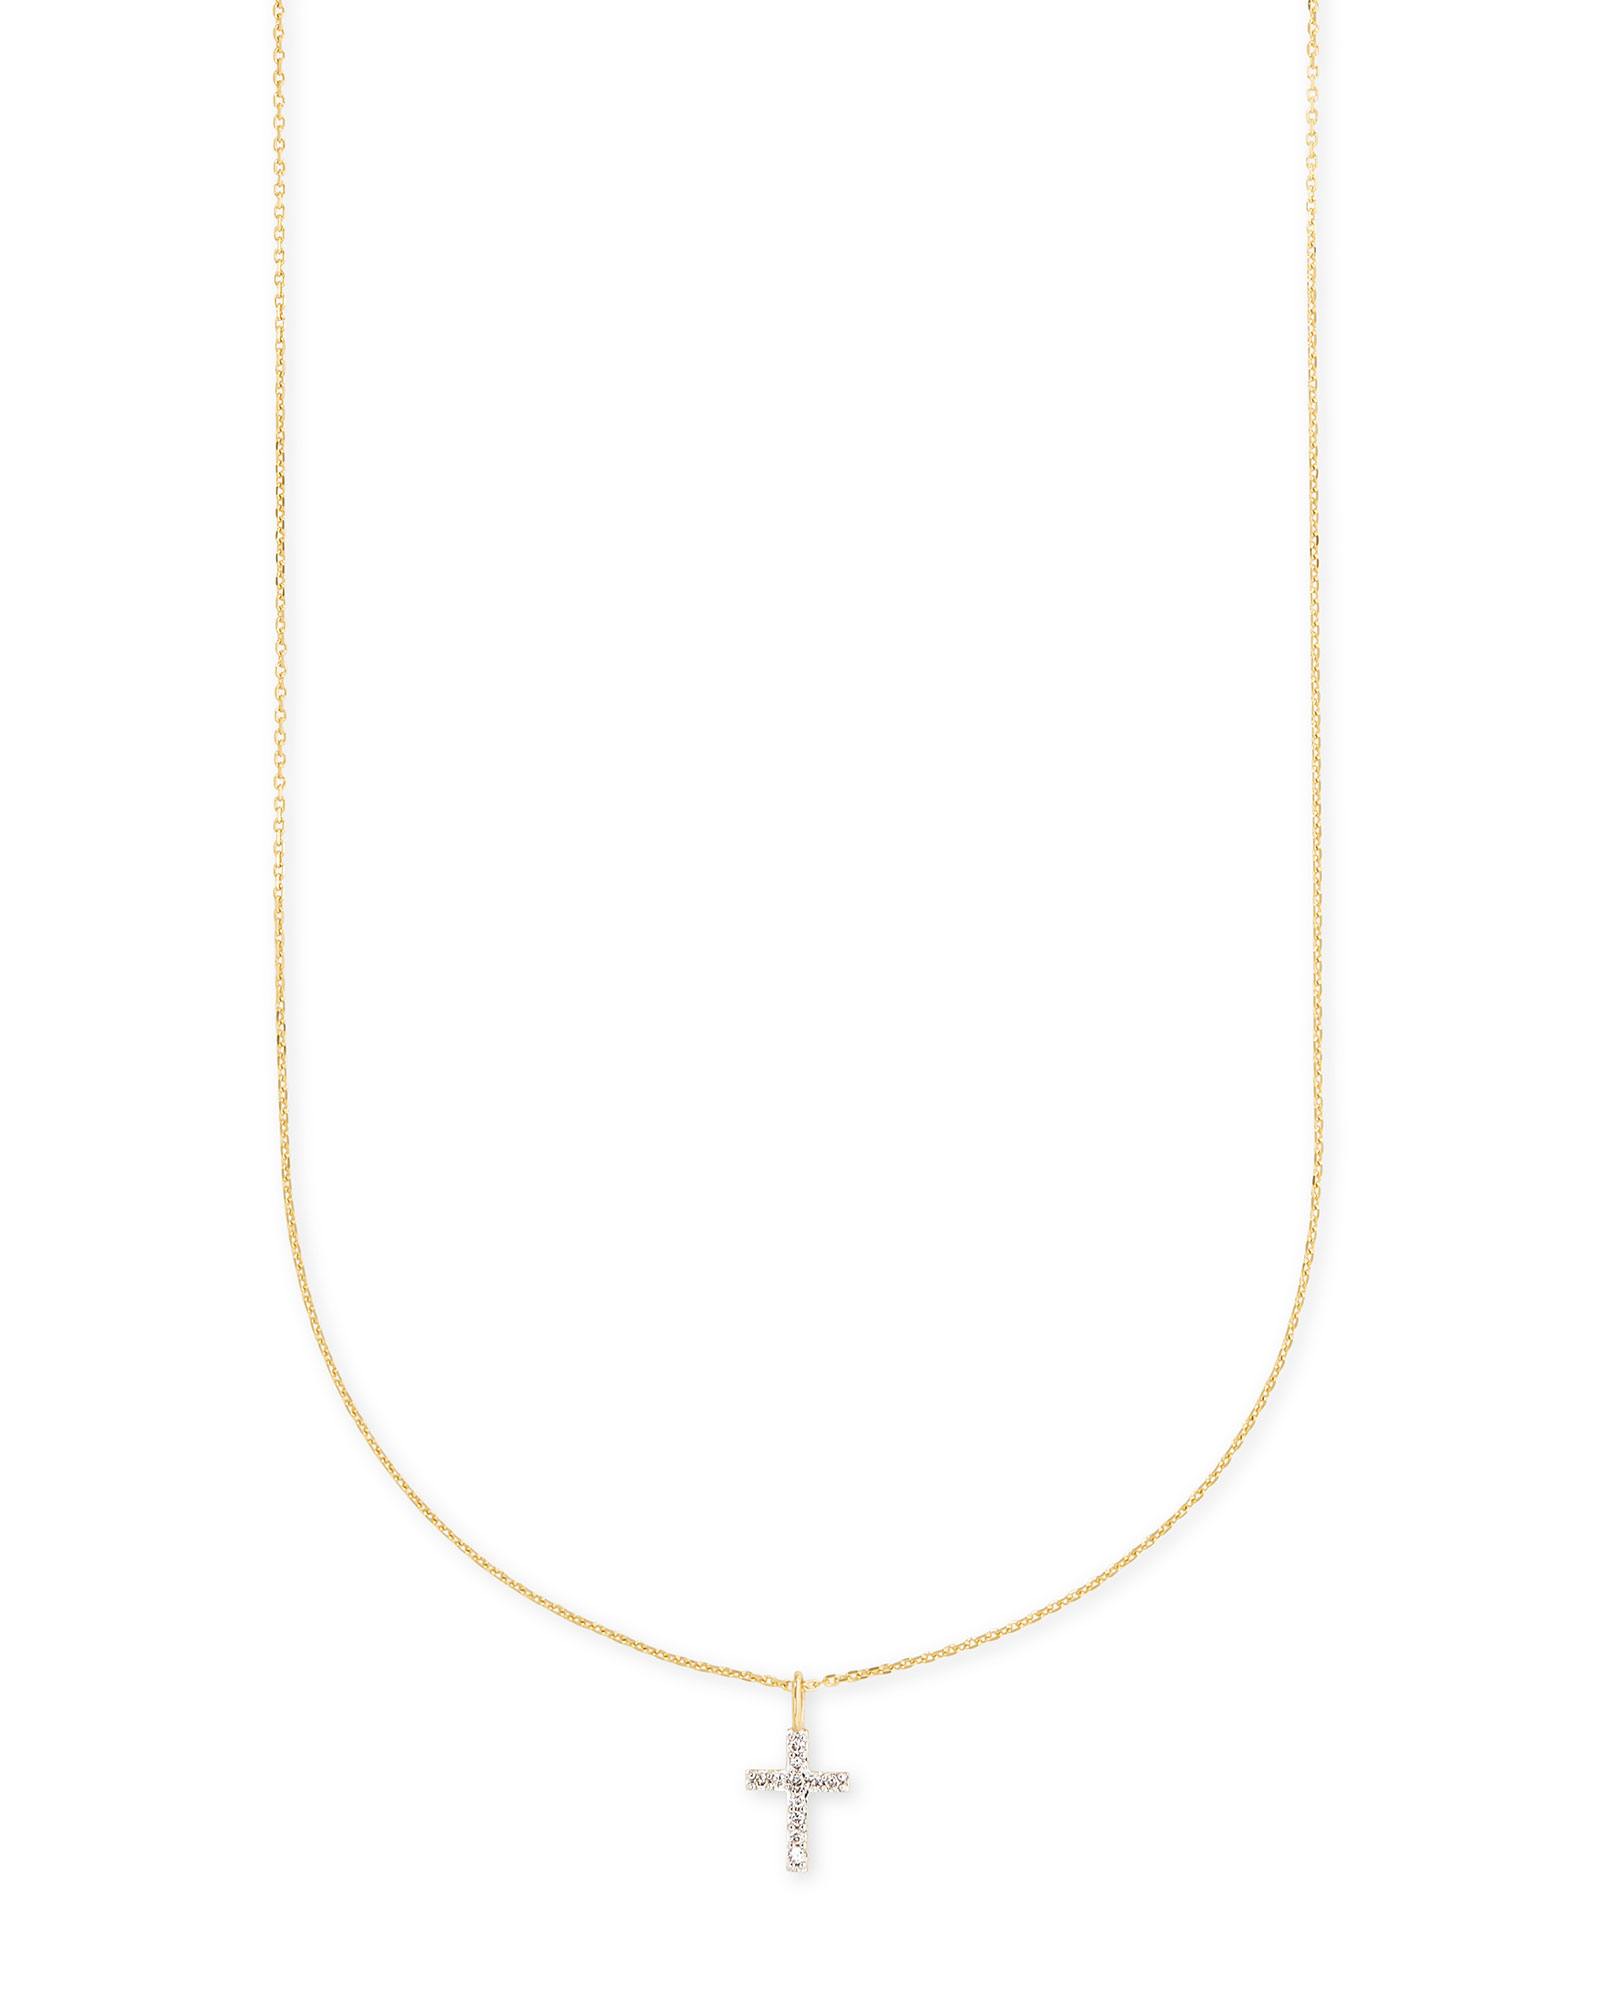 Cross 14k Yellow Gold Pendant Necklace in White Diamonds